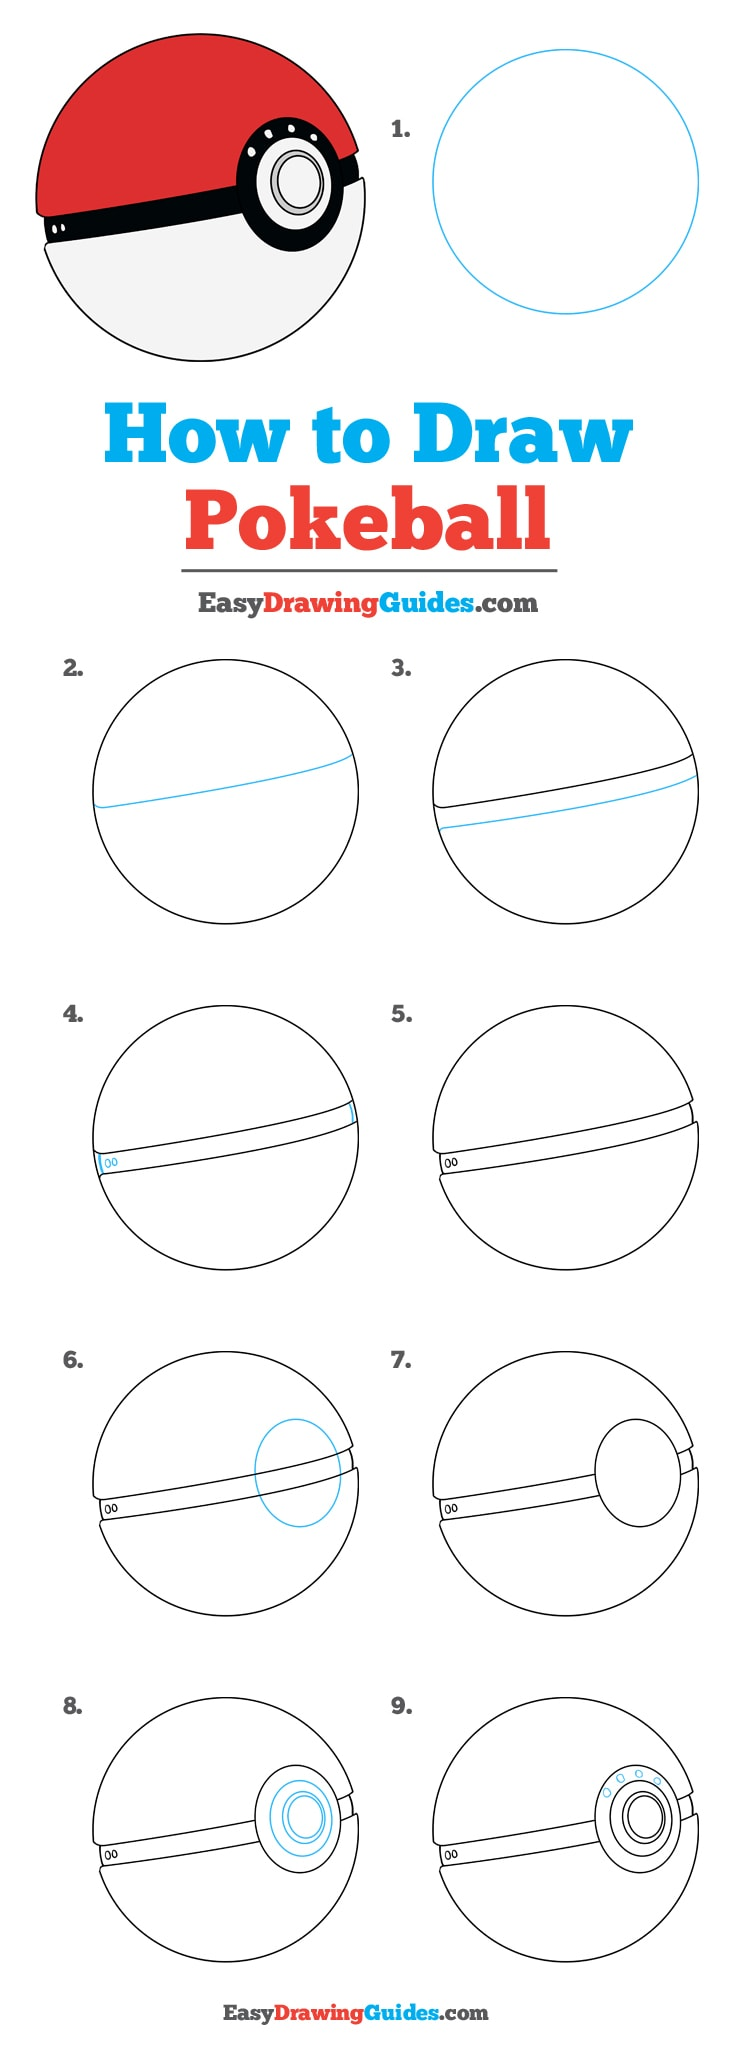 How to Draw a Poke Ball: Step by Step Tutorial